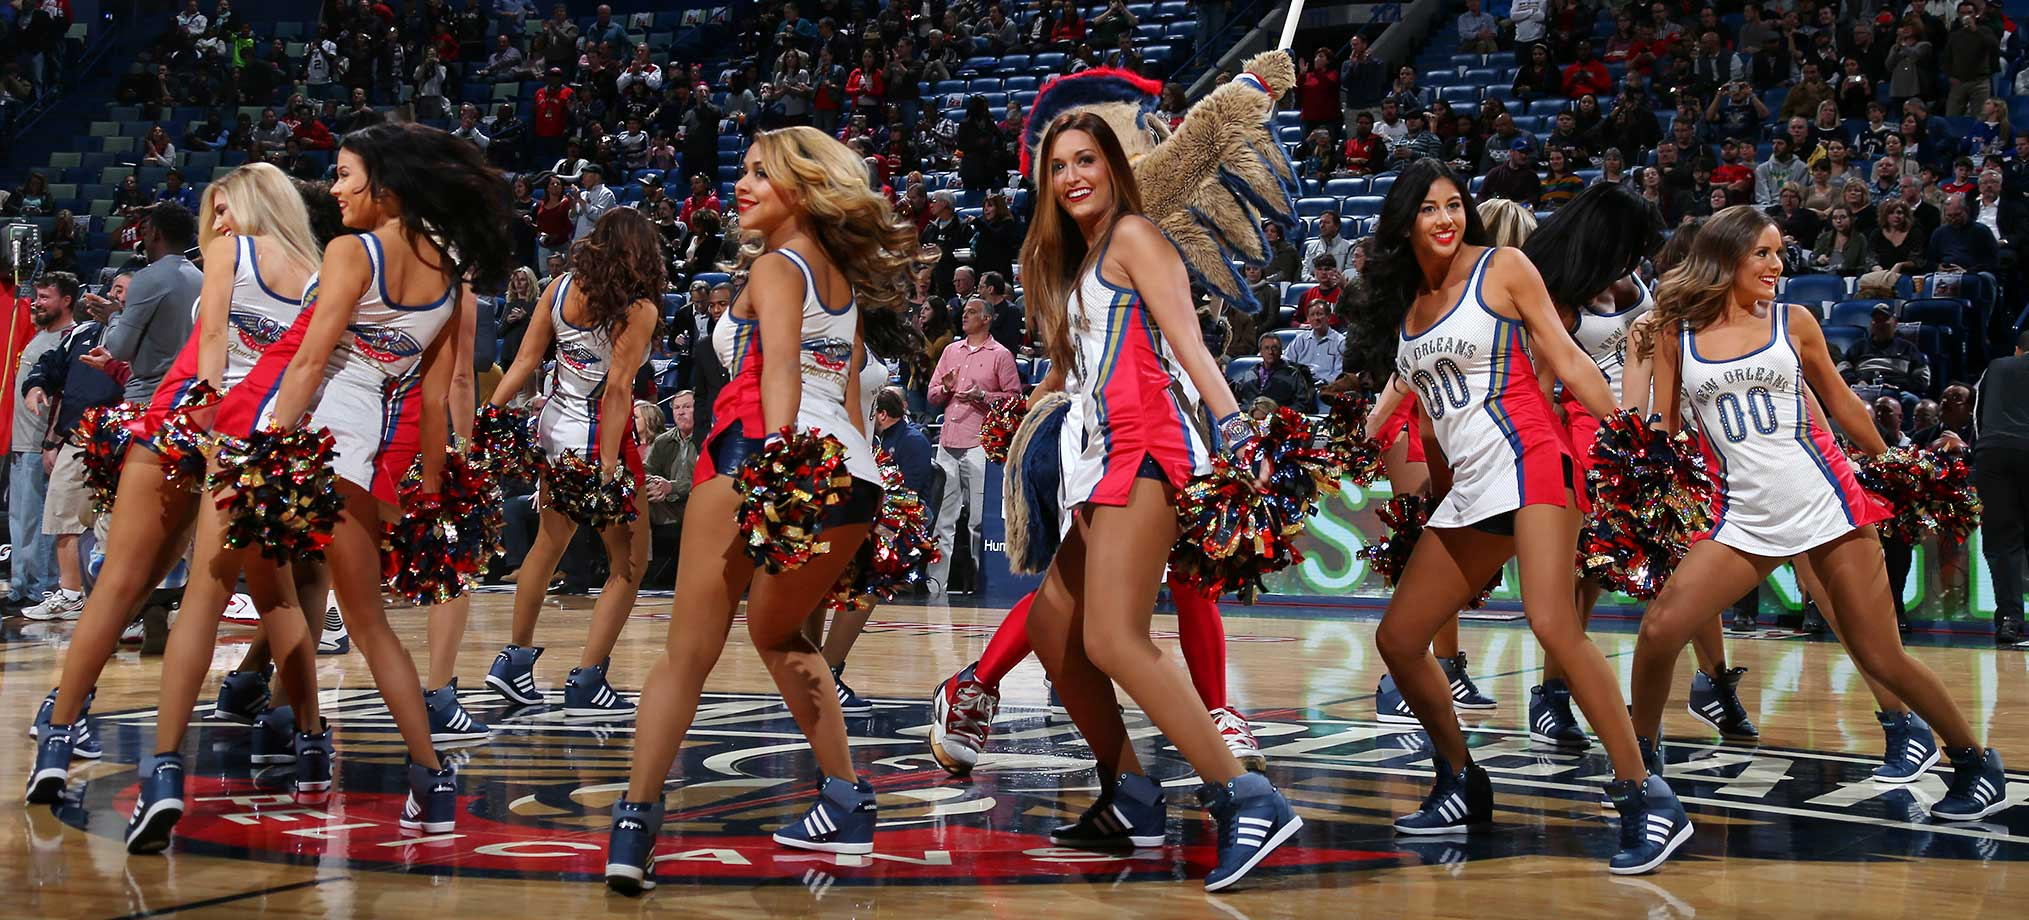 The New Orleans Pelicans dance team before the game against the Utah Jazz.